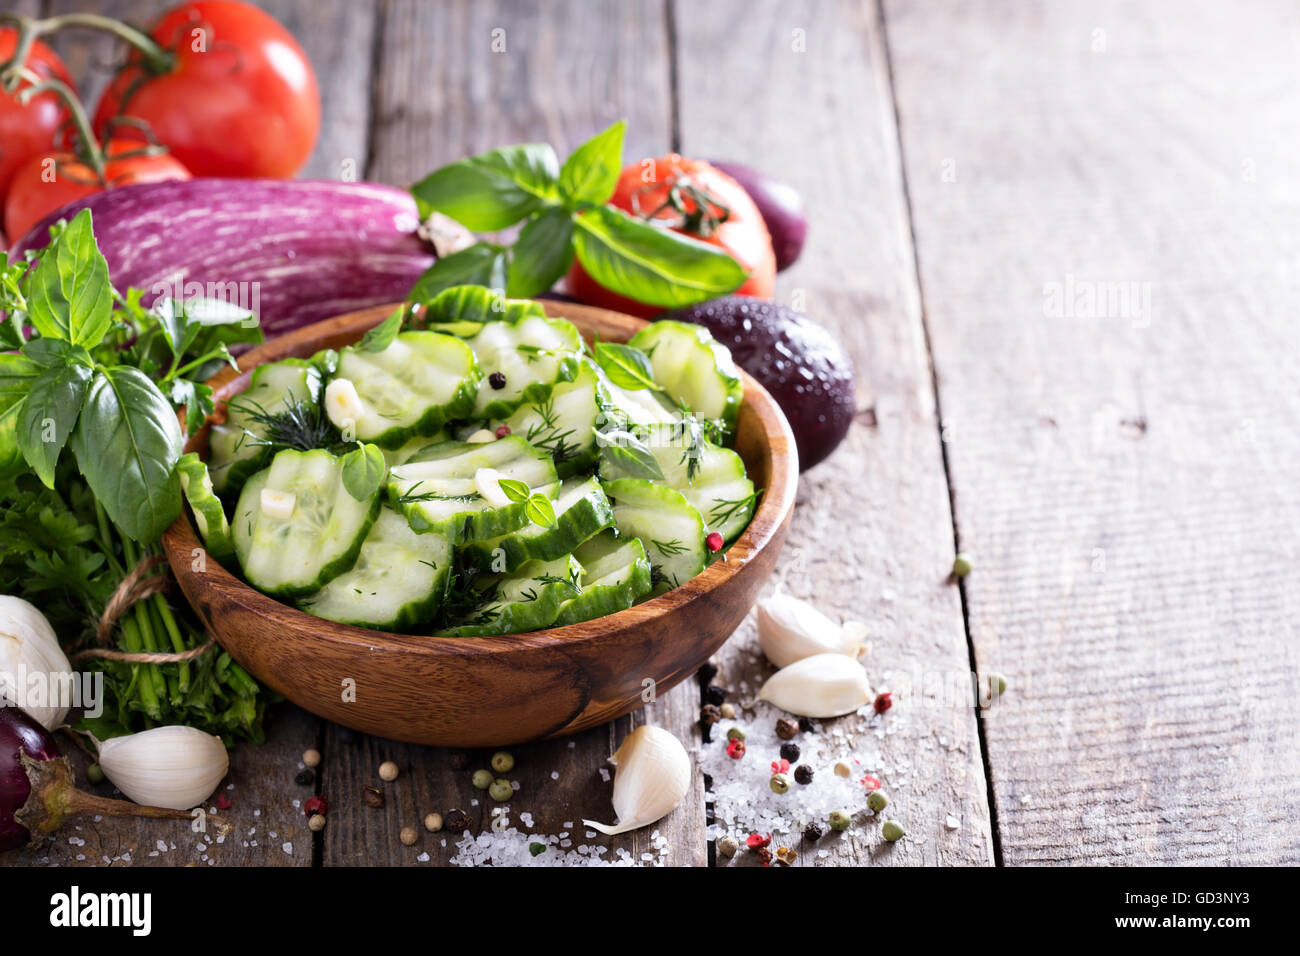 Pickled cucumber in a rustic wooden bowl - Stock Image